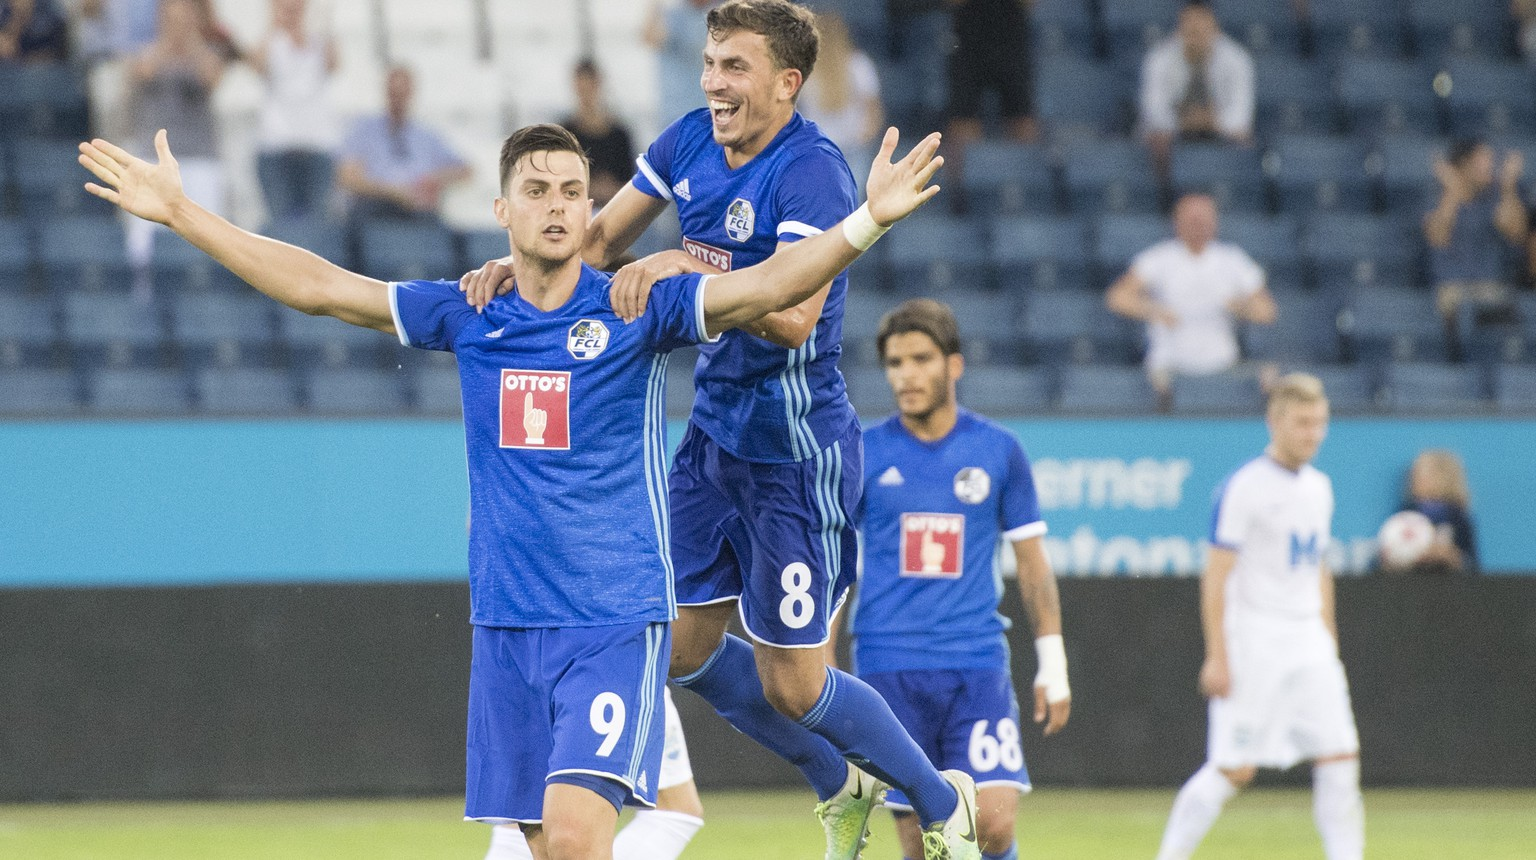 Tomi Juric, left, and Olivier Custodio, centre, from Luzern celebrate the Goal to the 2:0 during the UEFA Europa League qualifying second round soccer match between Switzerland's FC Luzern and Croatia's NK Osijek, in Lucerne, Switzerland, on Thursday, July 20, 2017. (KEYSTONE/Urs Flueeler)